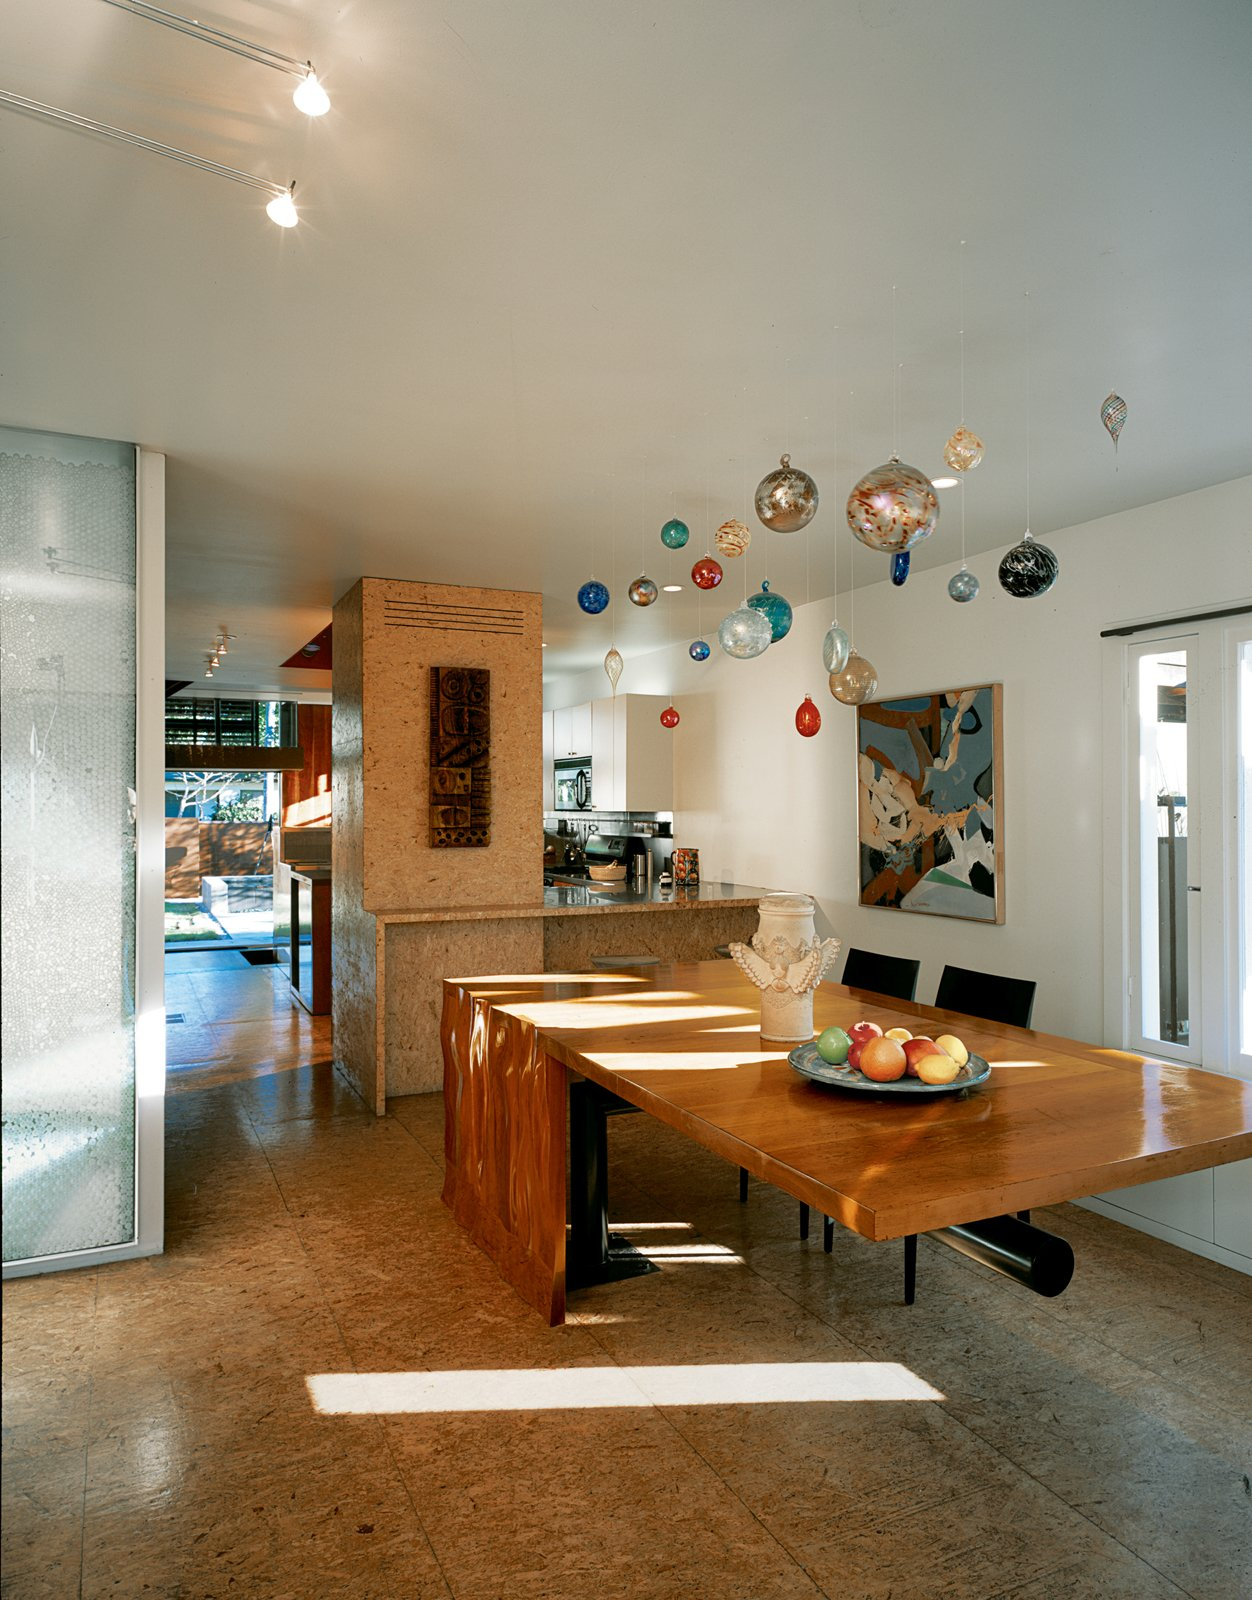 In the dining/kitchen area there are cabinets and floors made of oriented strand board (OSB) and a cherry dining table fabricated by Joe Cooper to the architects' design.  Photo 3 of 8 in Solar Inspiration